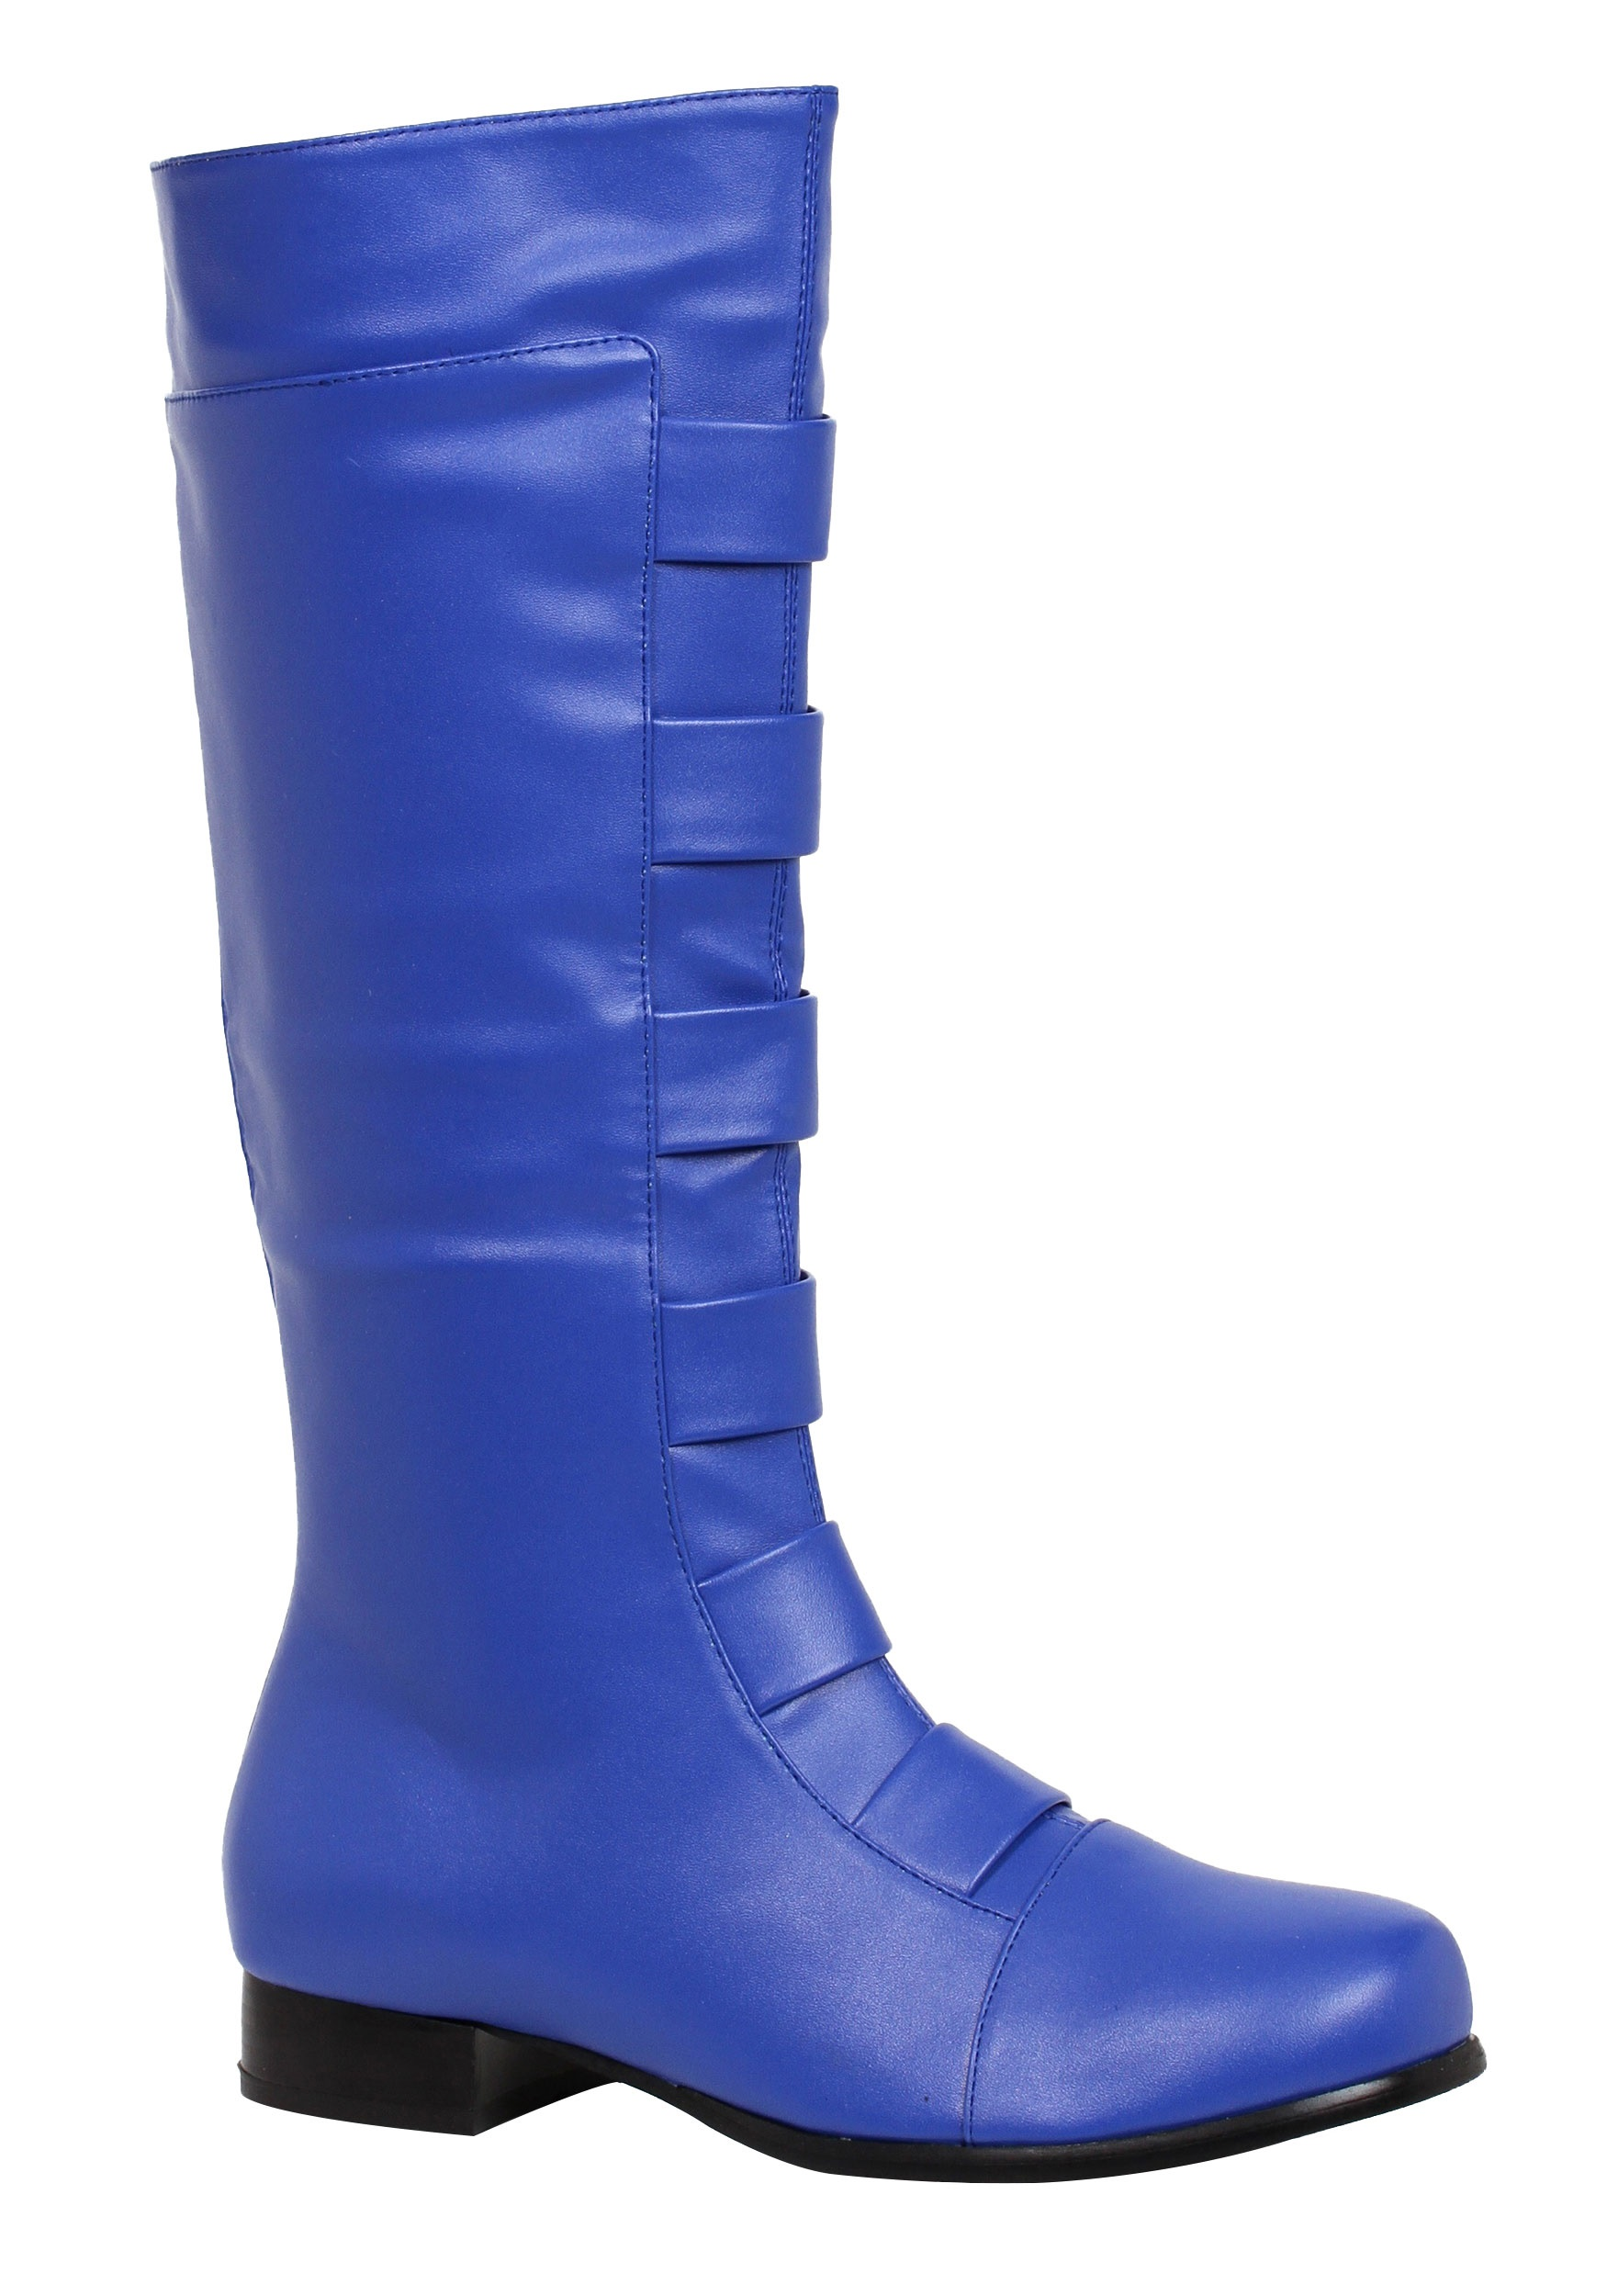 Adult Blue Superhero Boots EES1221MARCBL